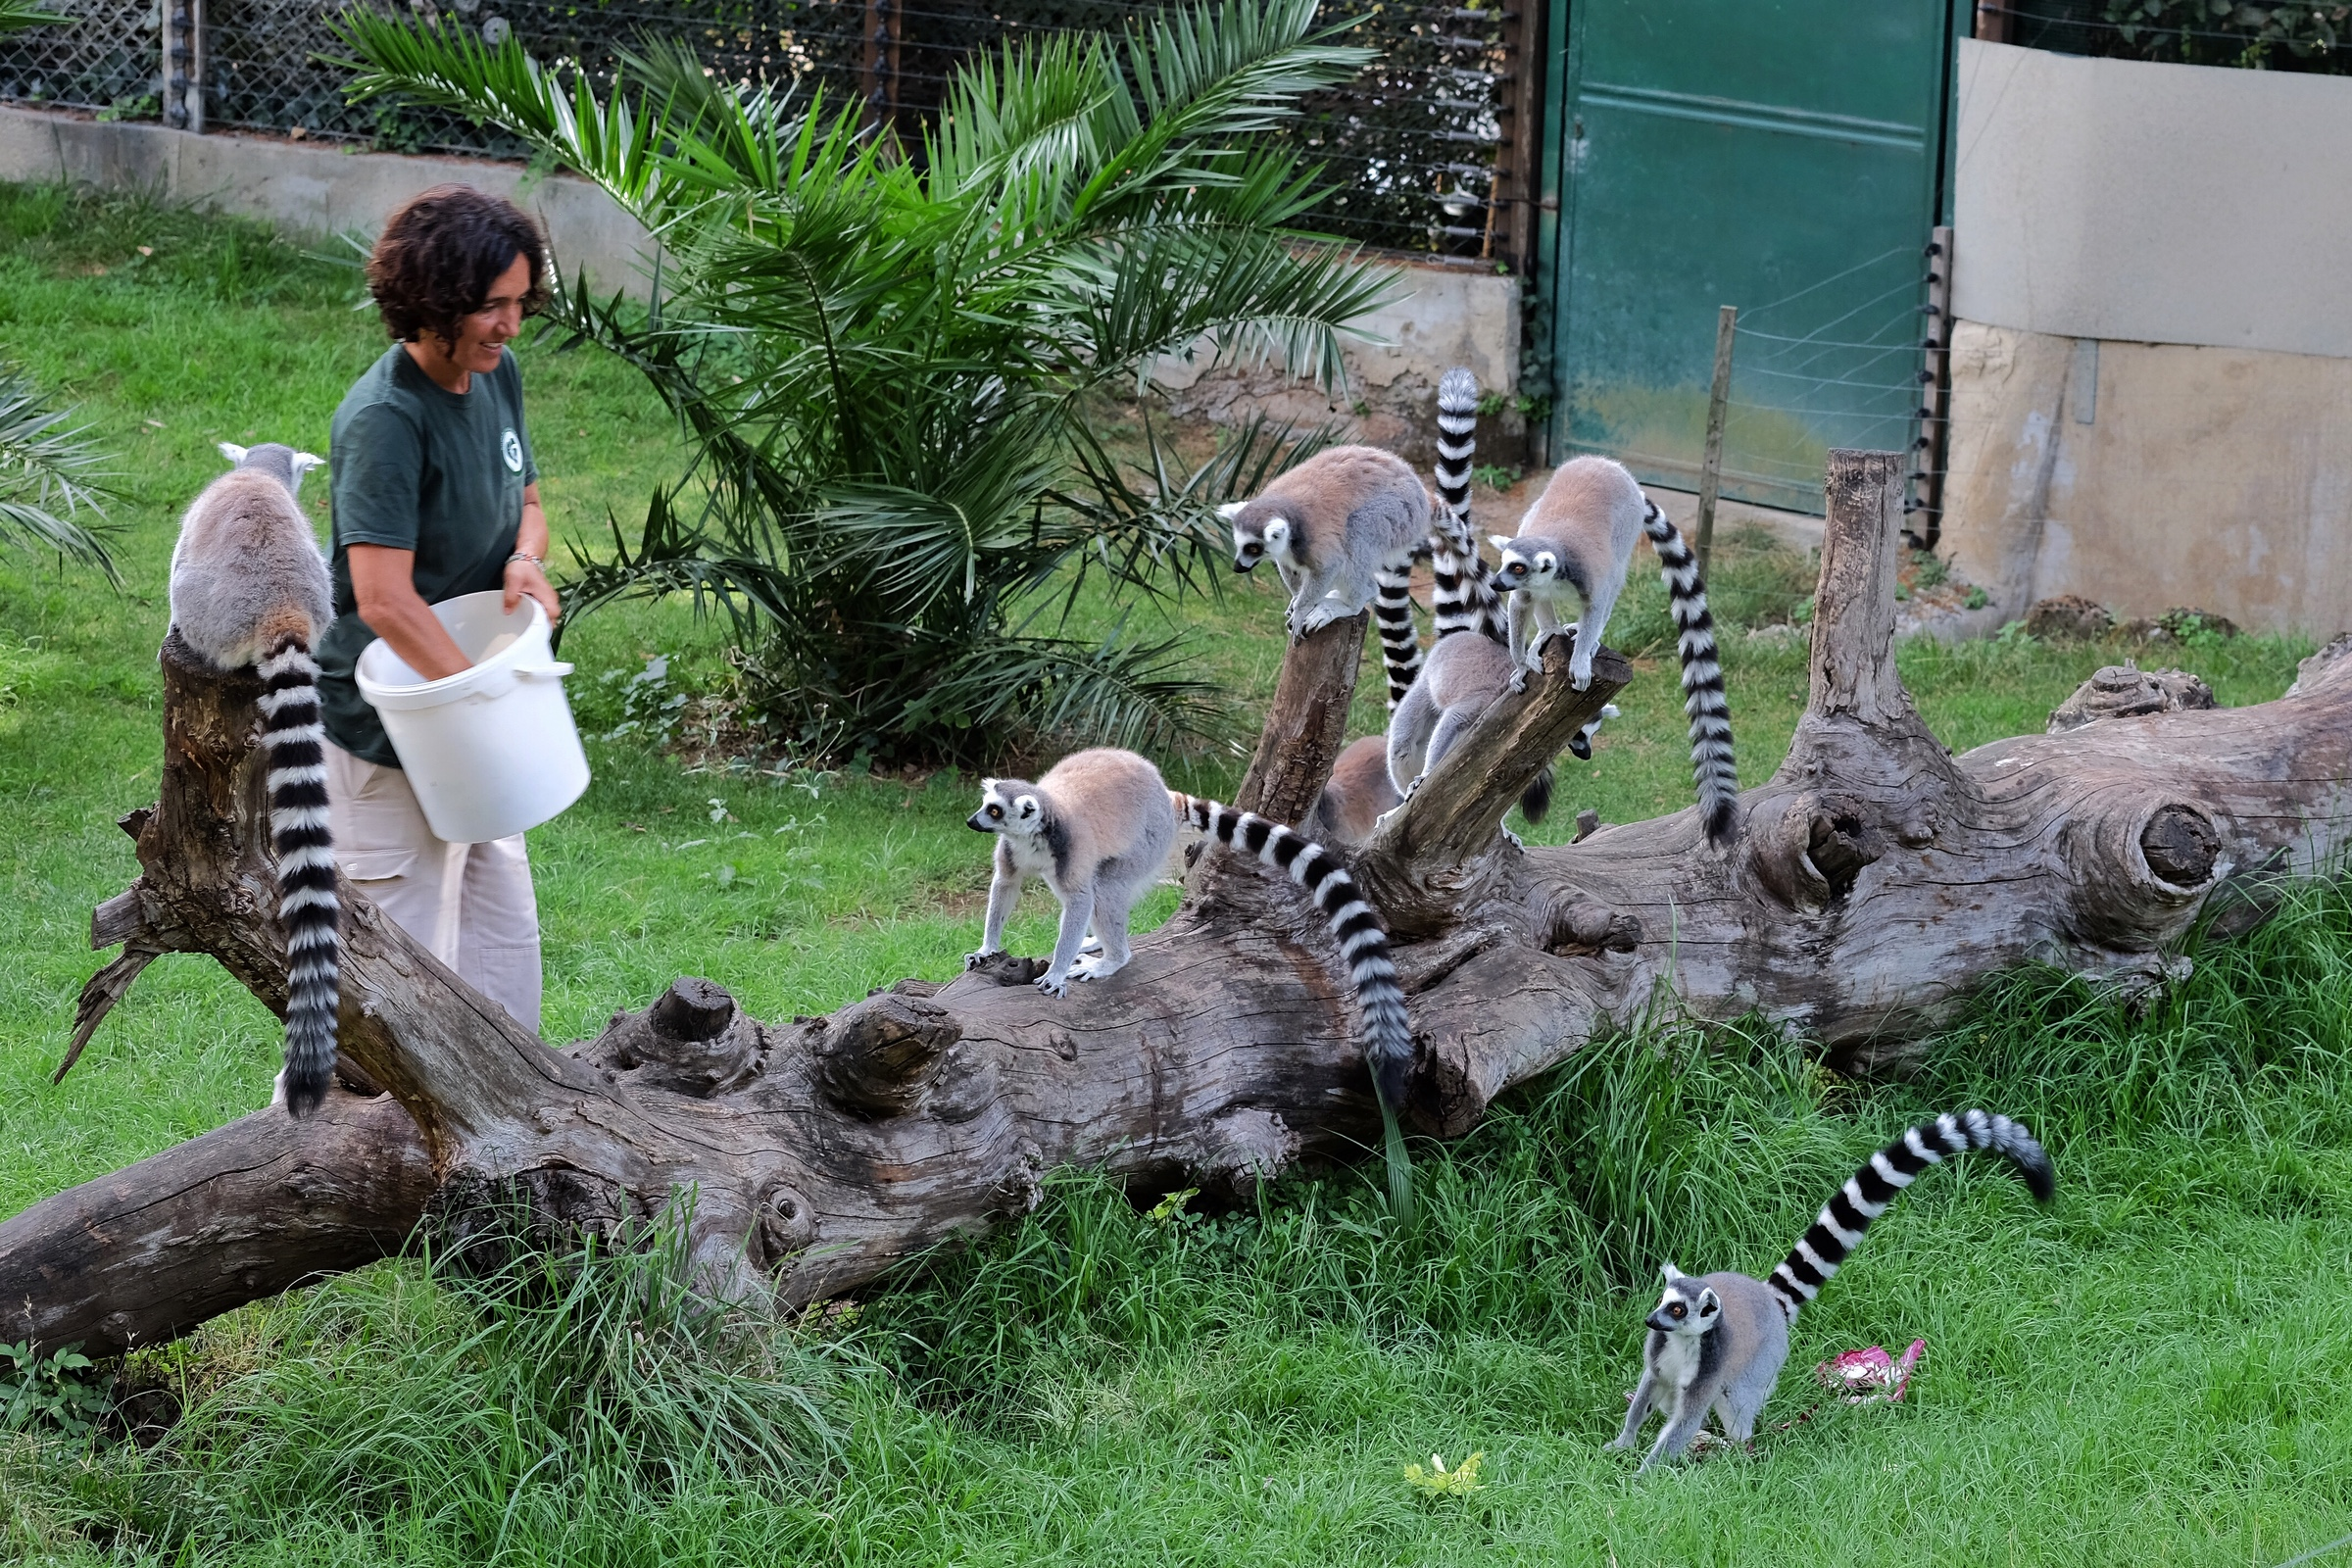 Feeding the lemurs an Italian breakfast at Bioparco Roma.